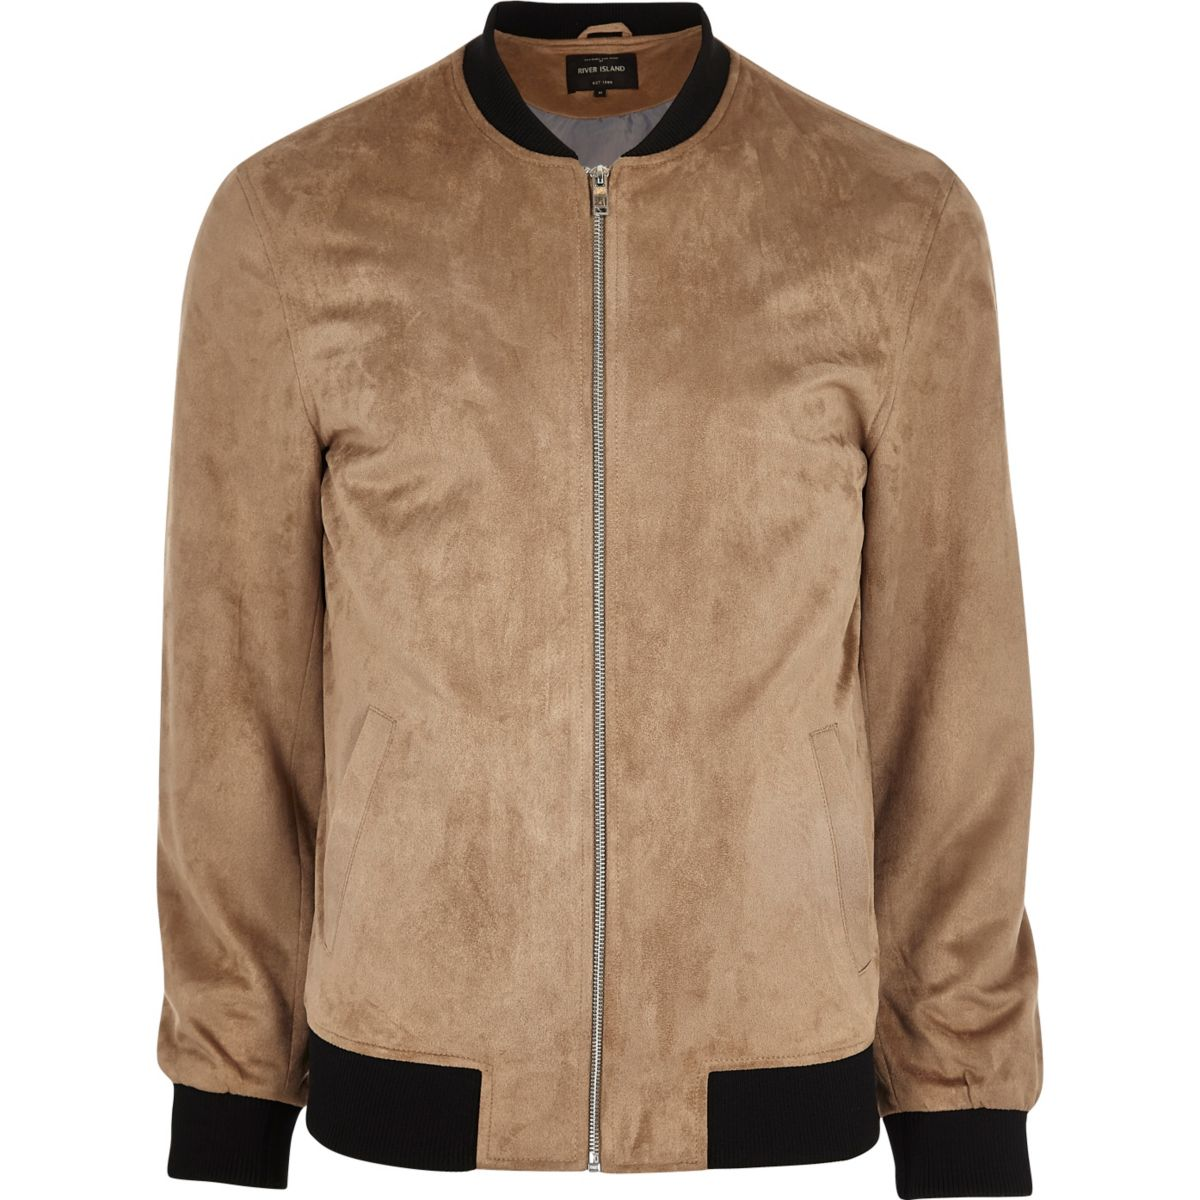 Find mens suede jacket at Macy's Macy's Presents: The Edit - A curated mix of fashion and inspiration Check It Out Free Shipping with $99 purchase + Free Store Pickup.